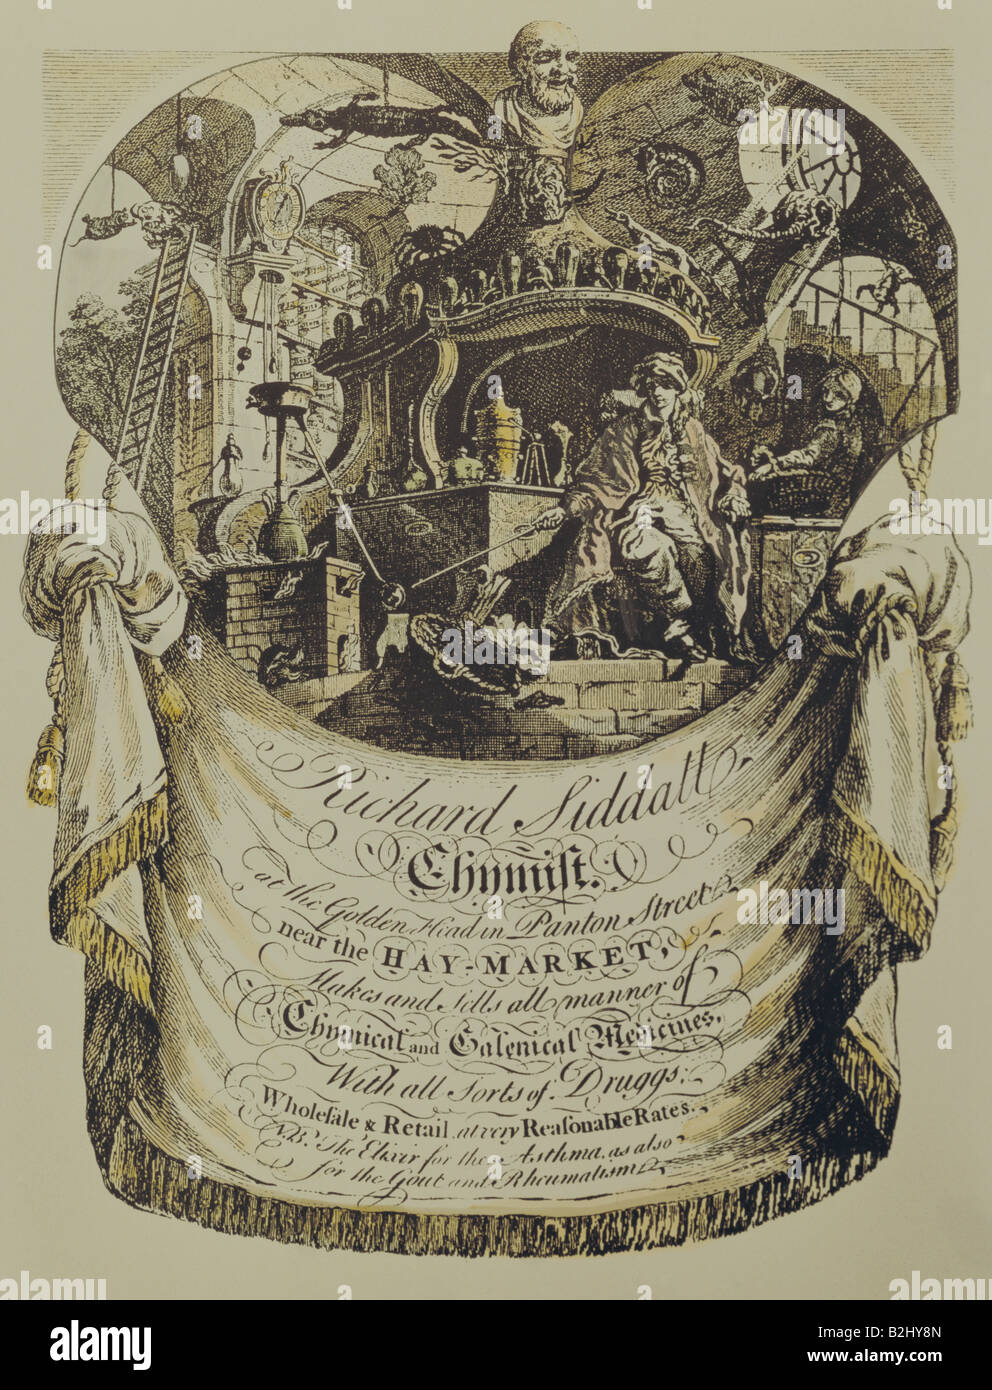 alchemy, alchemists, business card of the chemist Richard Siddall, Copper engraving by L. Clee, Great Britain, 2nd - Stock Image